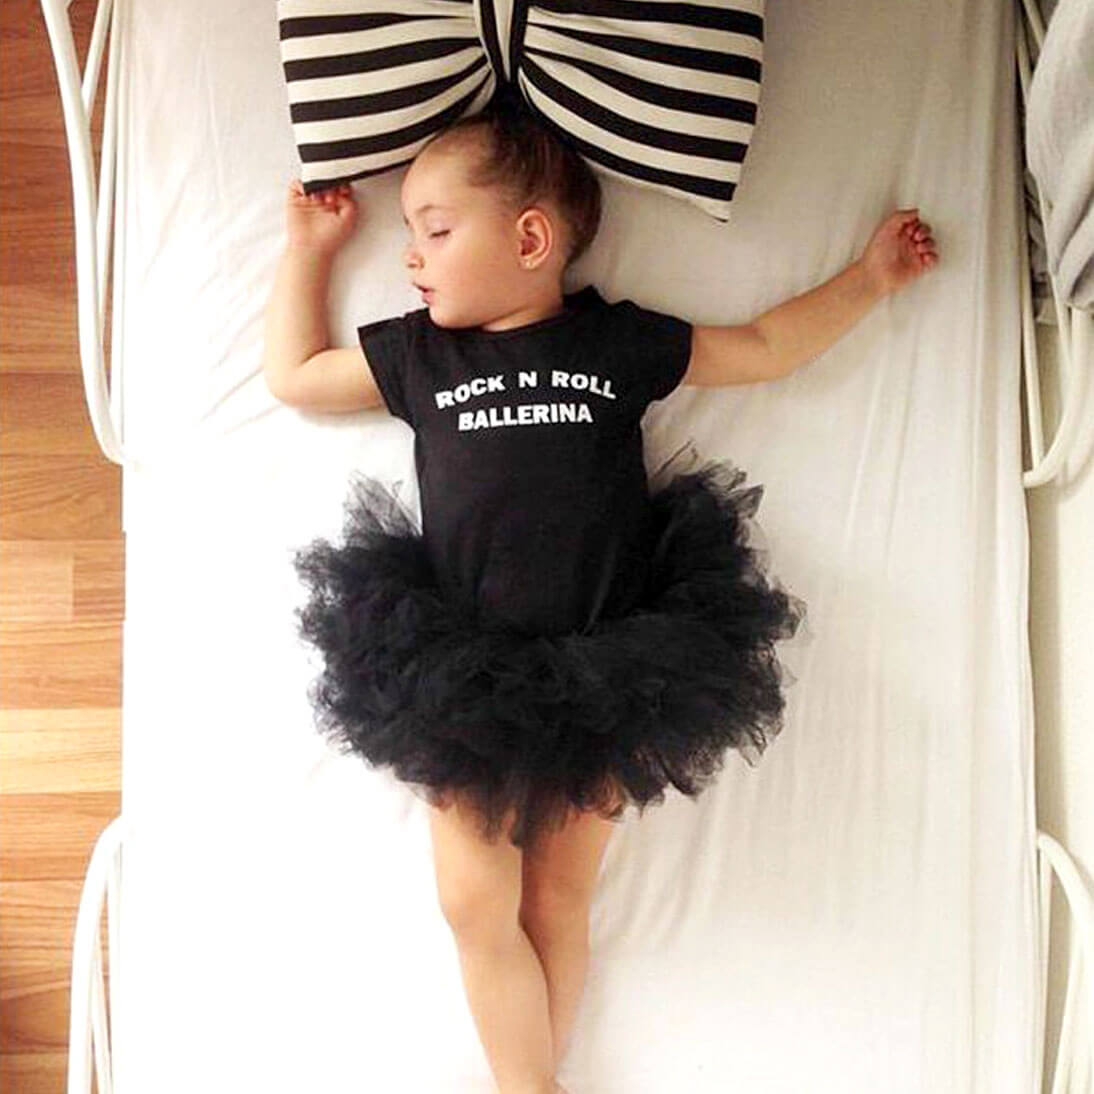 Rock n' Roll Printed Tutu Dress in Black for Baby/Toddler Girls